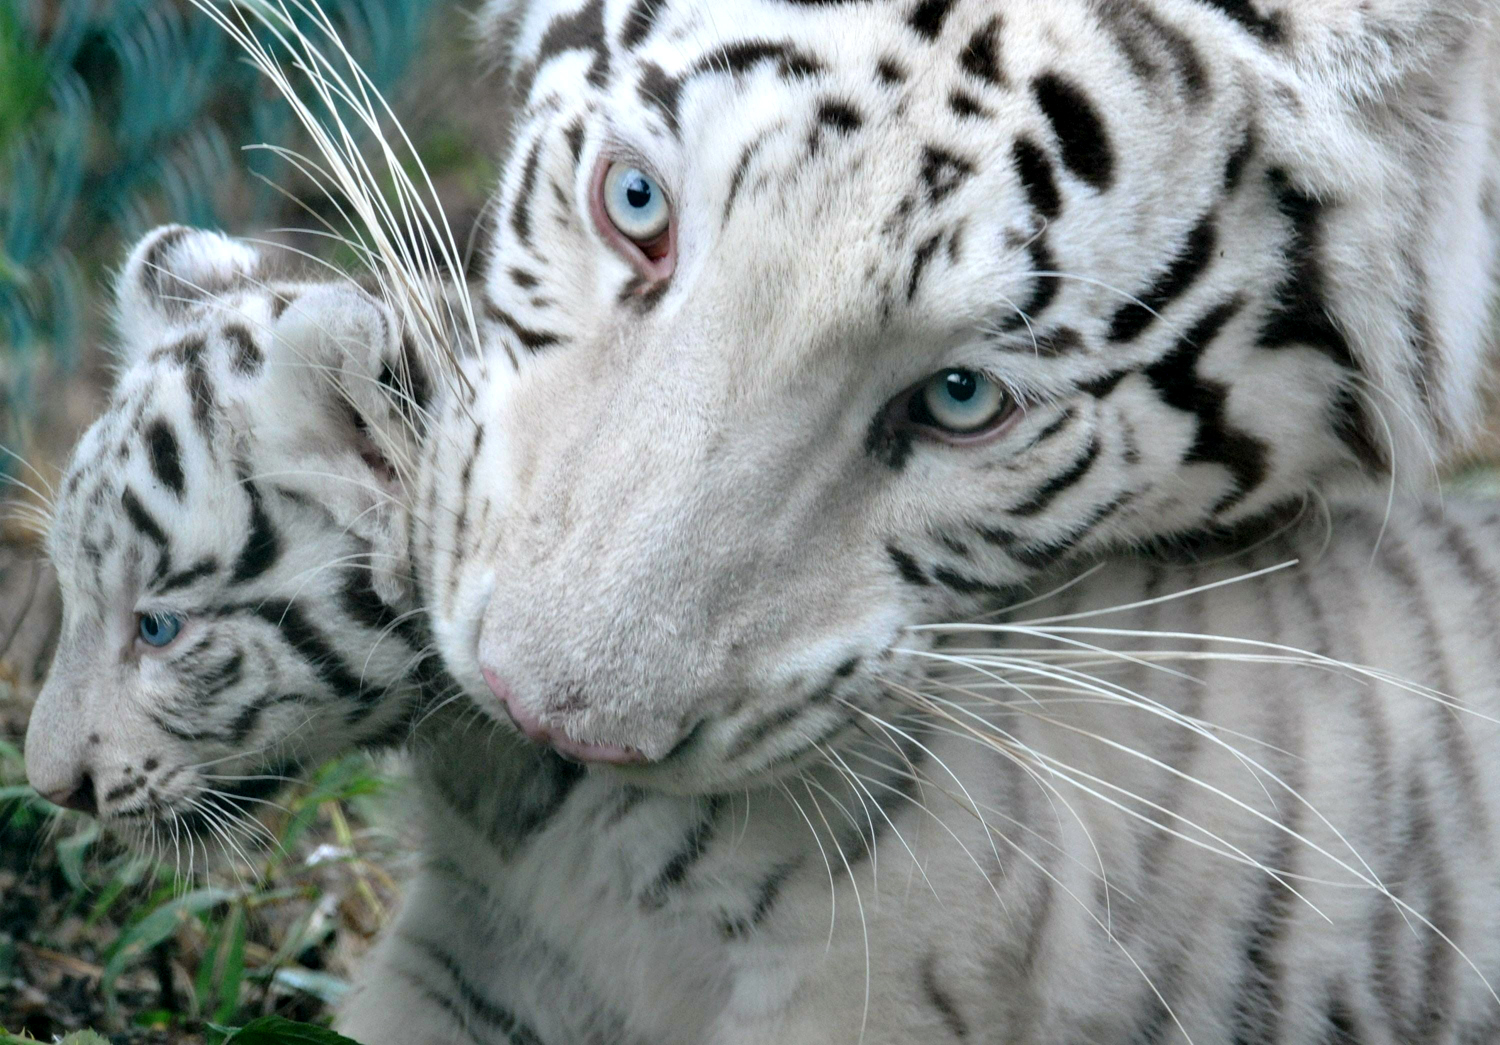 White Tiger Images White Tigers Hd Wallpaper And Background Photos